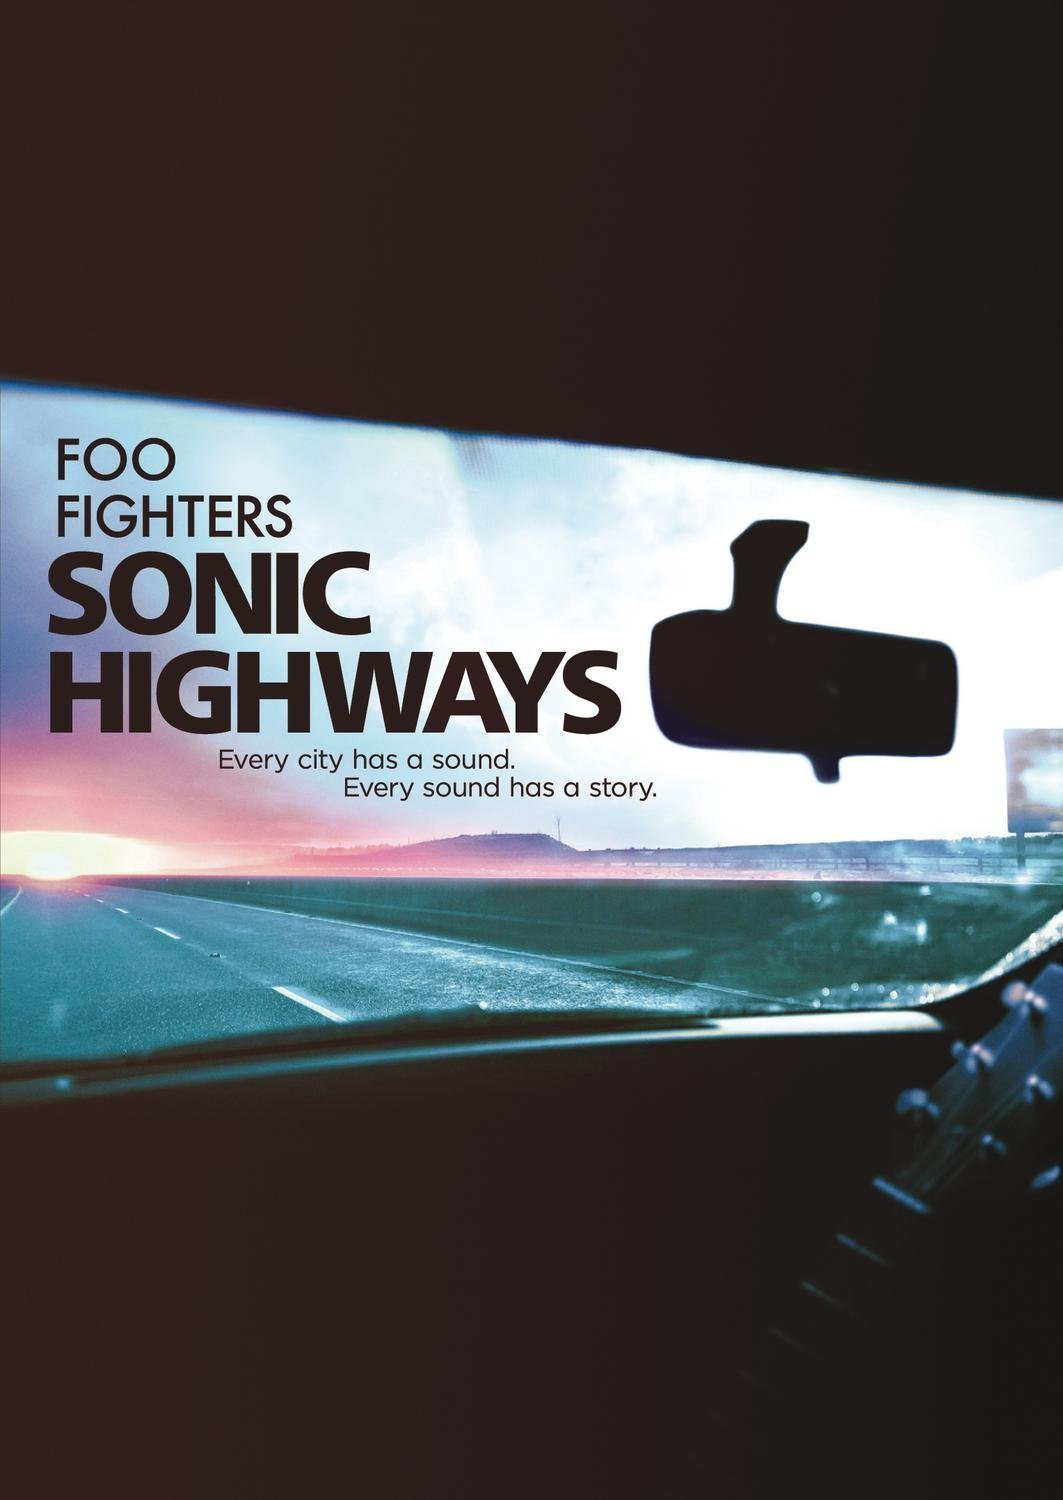 DVD : Foo Fighters - Sonic Highways [Explicit Content] (4 Disc)